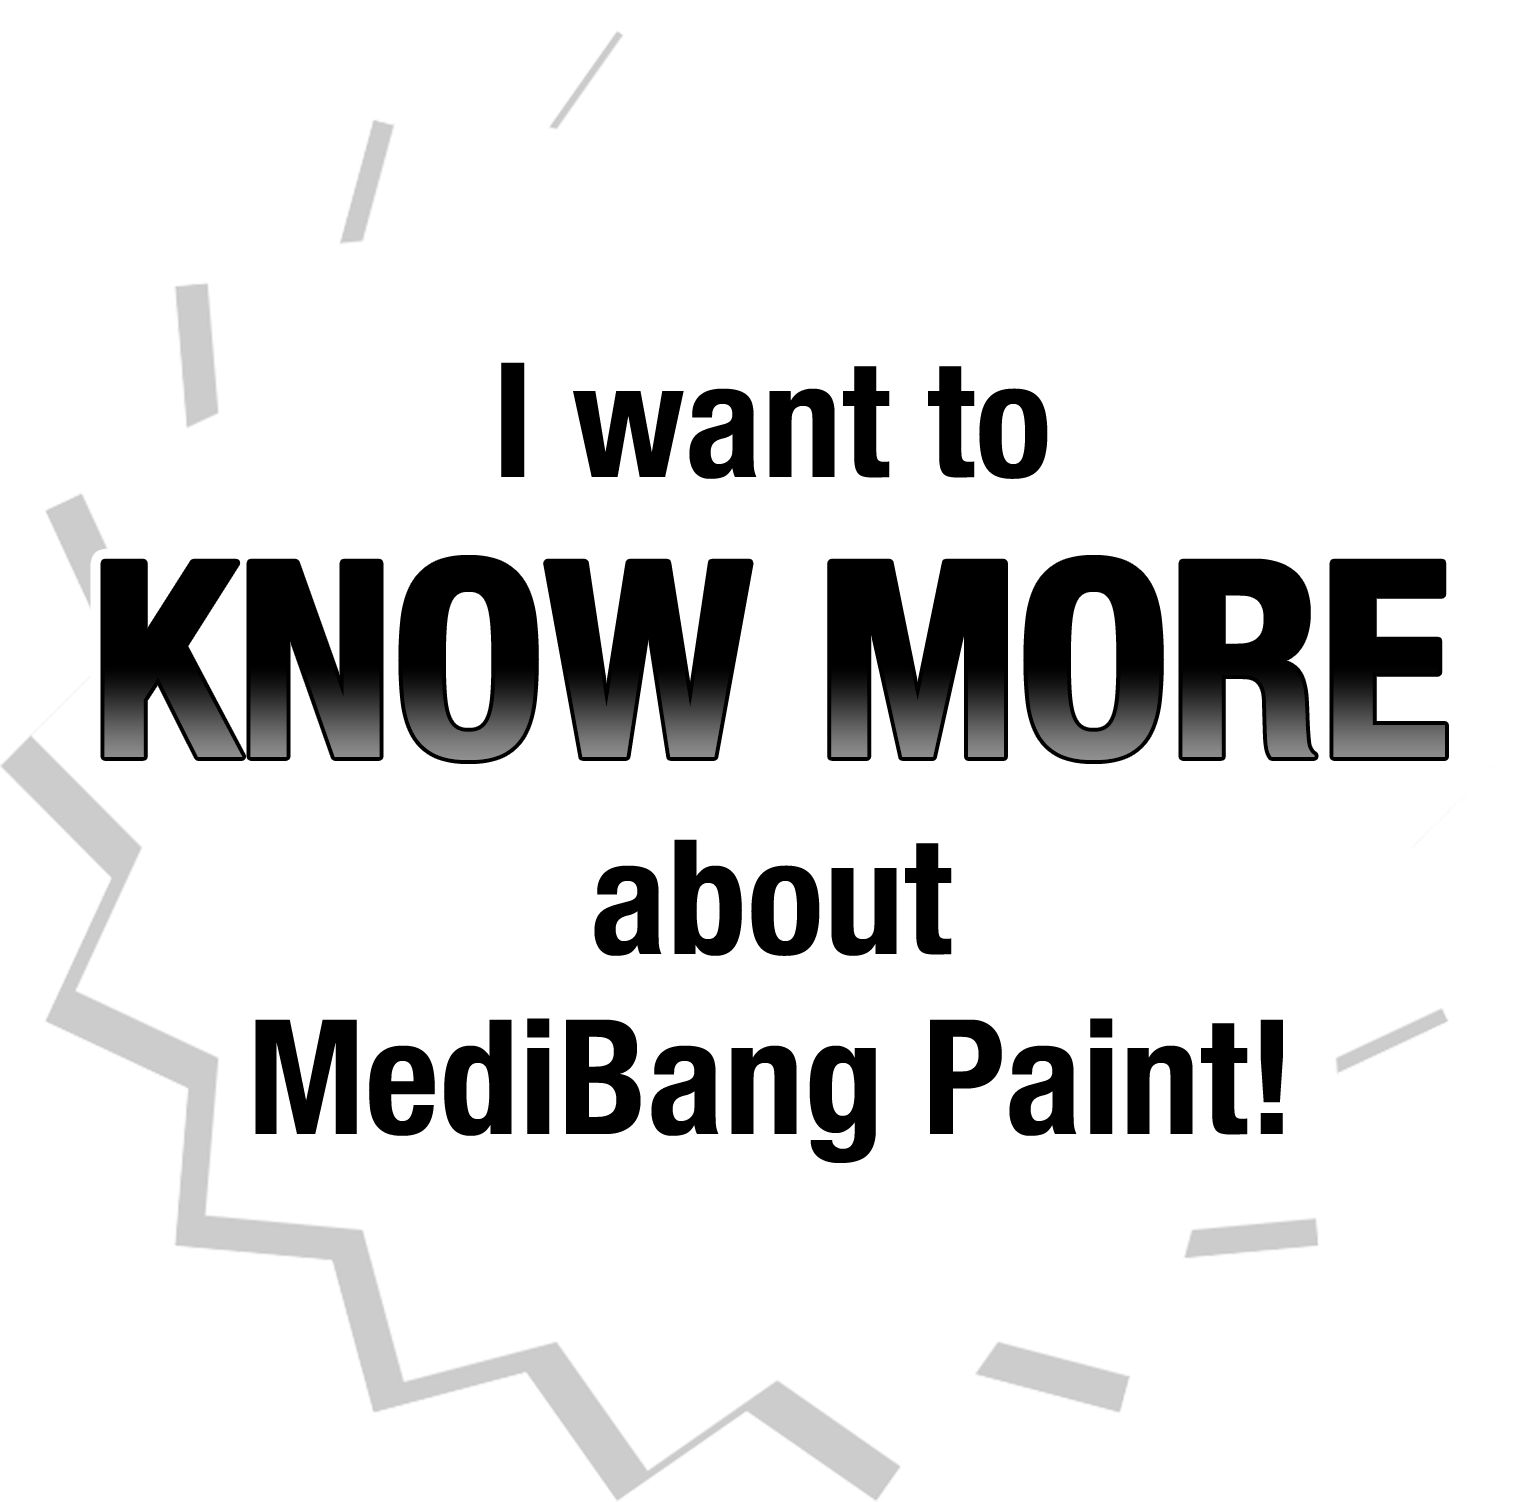 I want to know more about MediBang Paint!